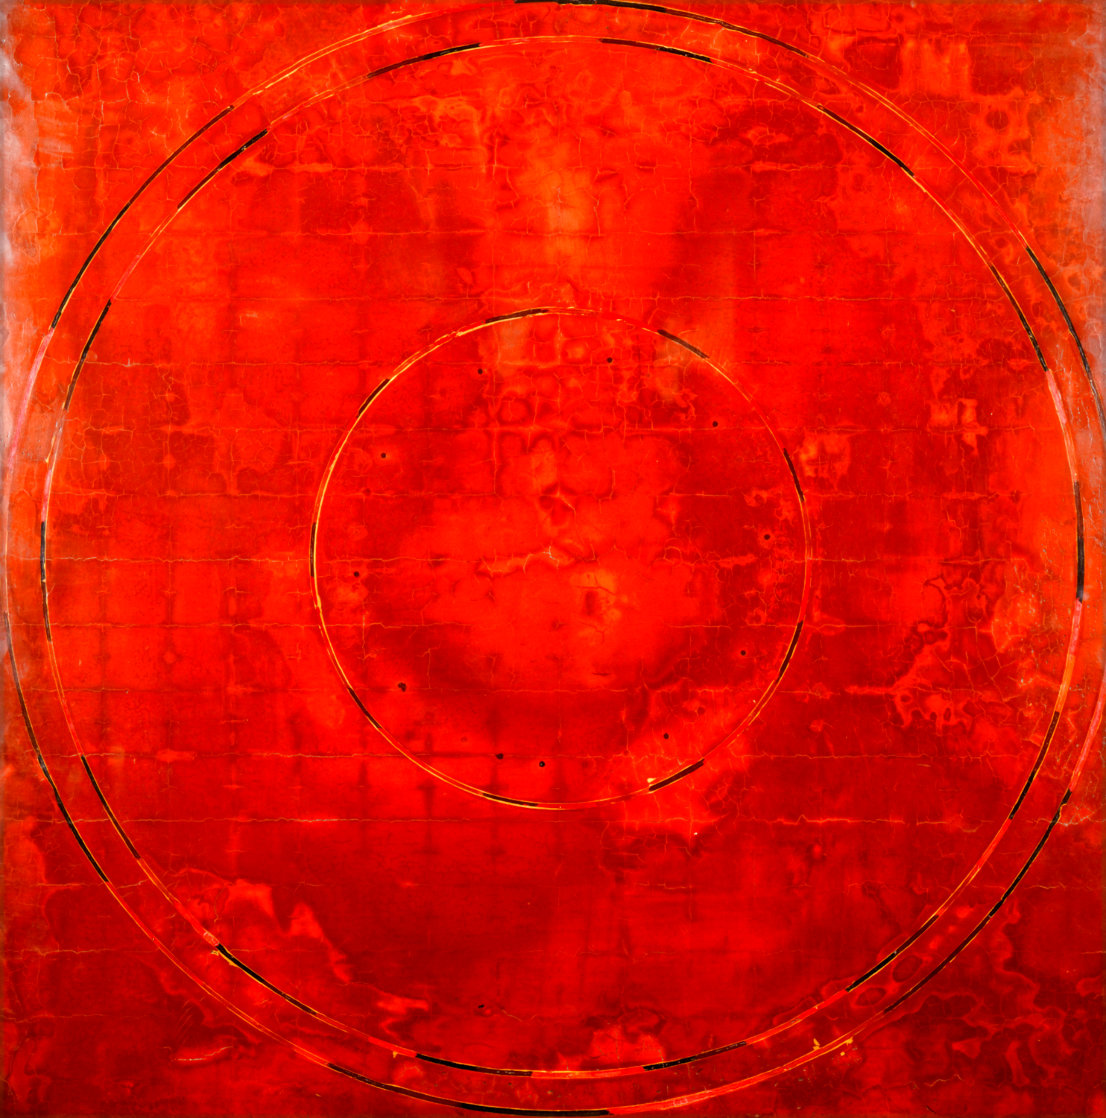 Concentric Episode Series: Hausa 2000 35x32 Huge Original Painting by Kris Cox